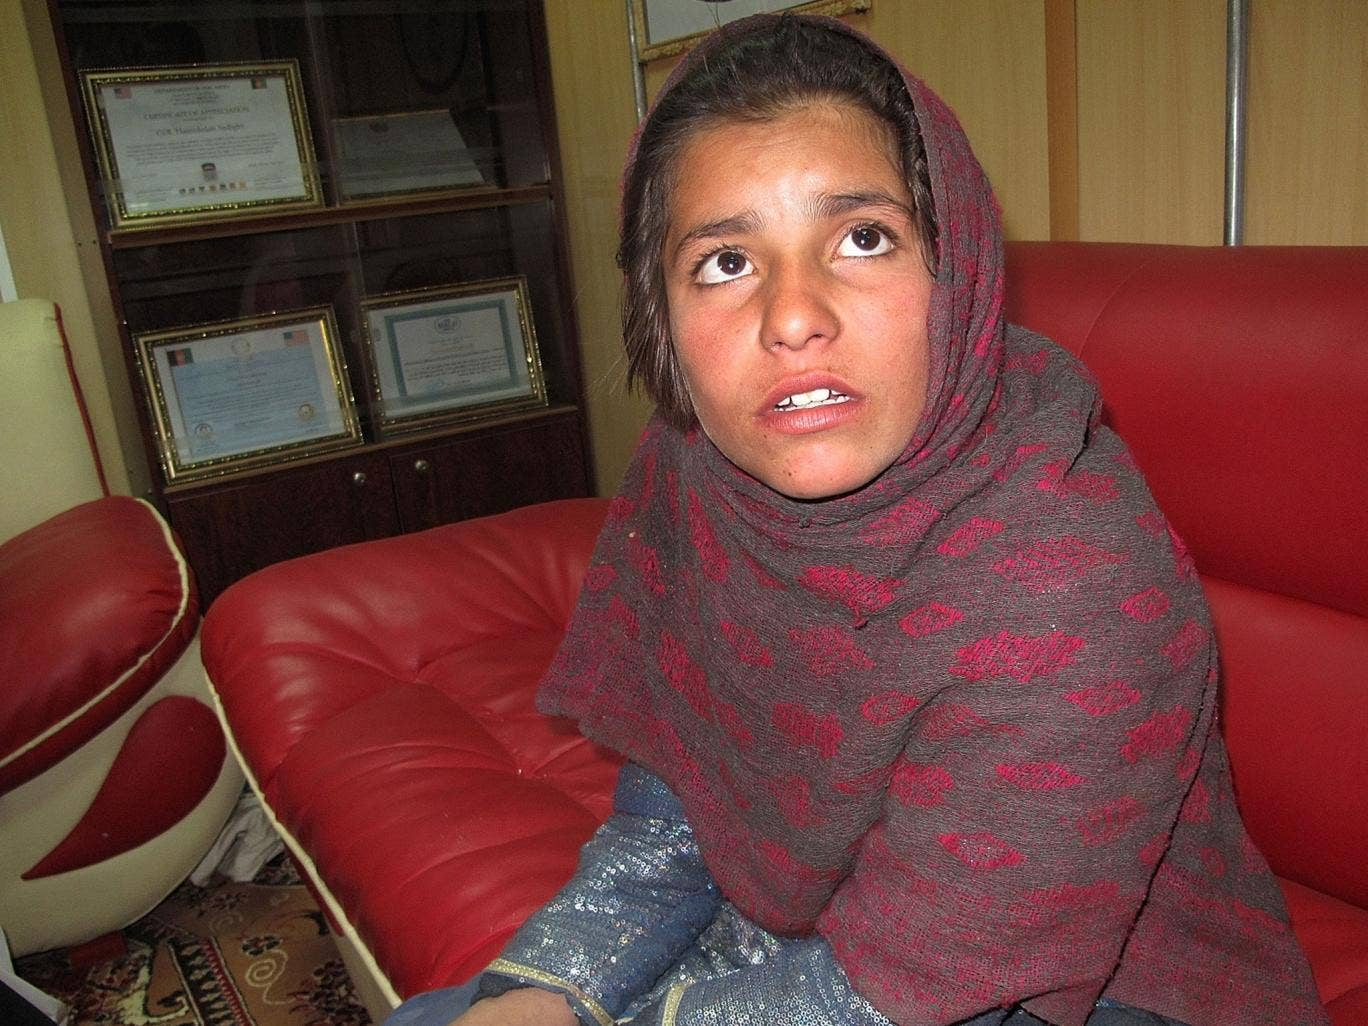 Spozhmai, 10, who was about to be used by the Taliban as a suicide bomber, talks as she sits at a police office in Helmand province on January 6, 2014. Afghan authorities said on January 6 that they had detained a 10-year-old girl for attempting to carry